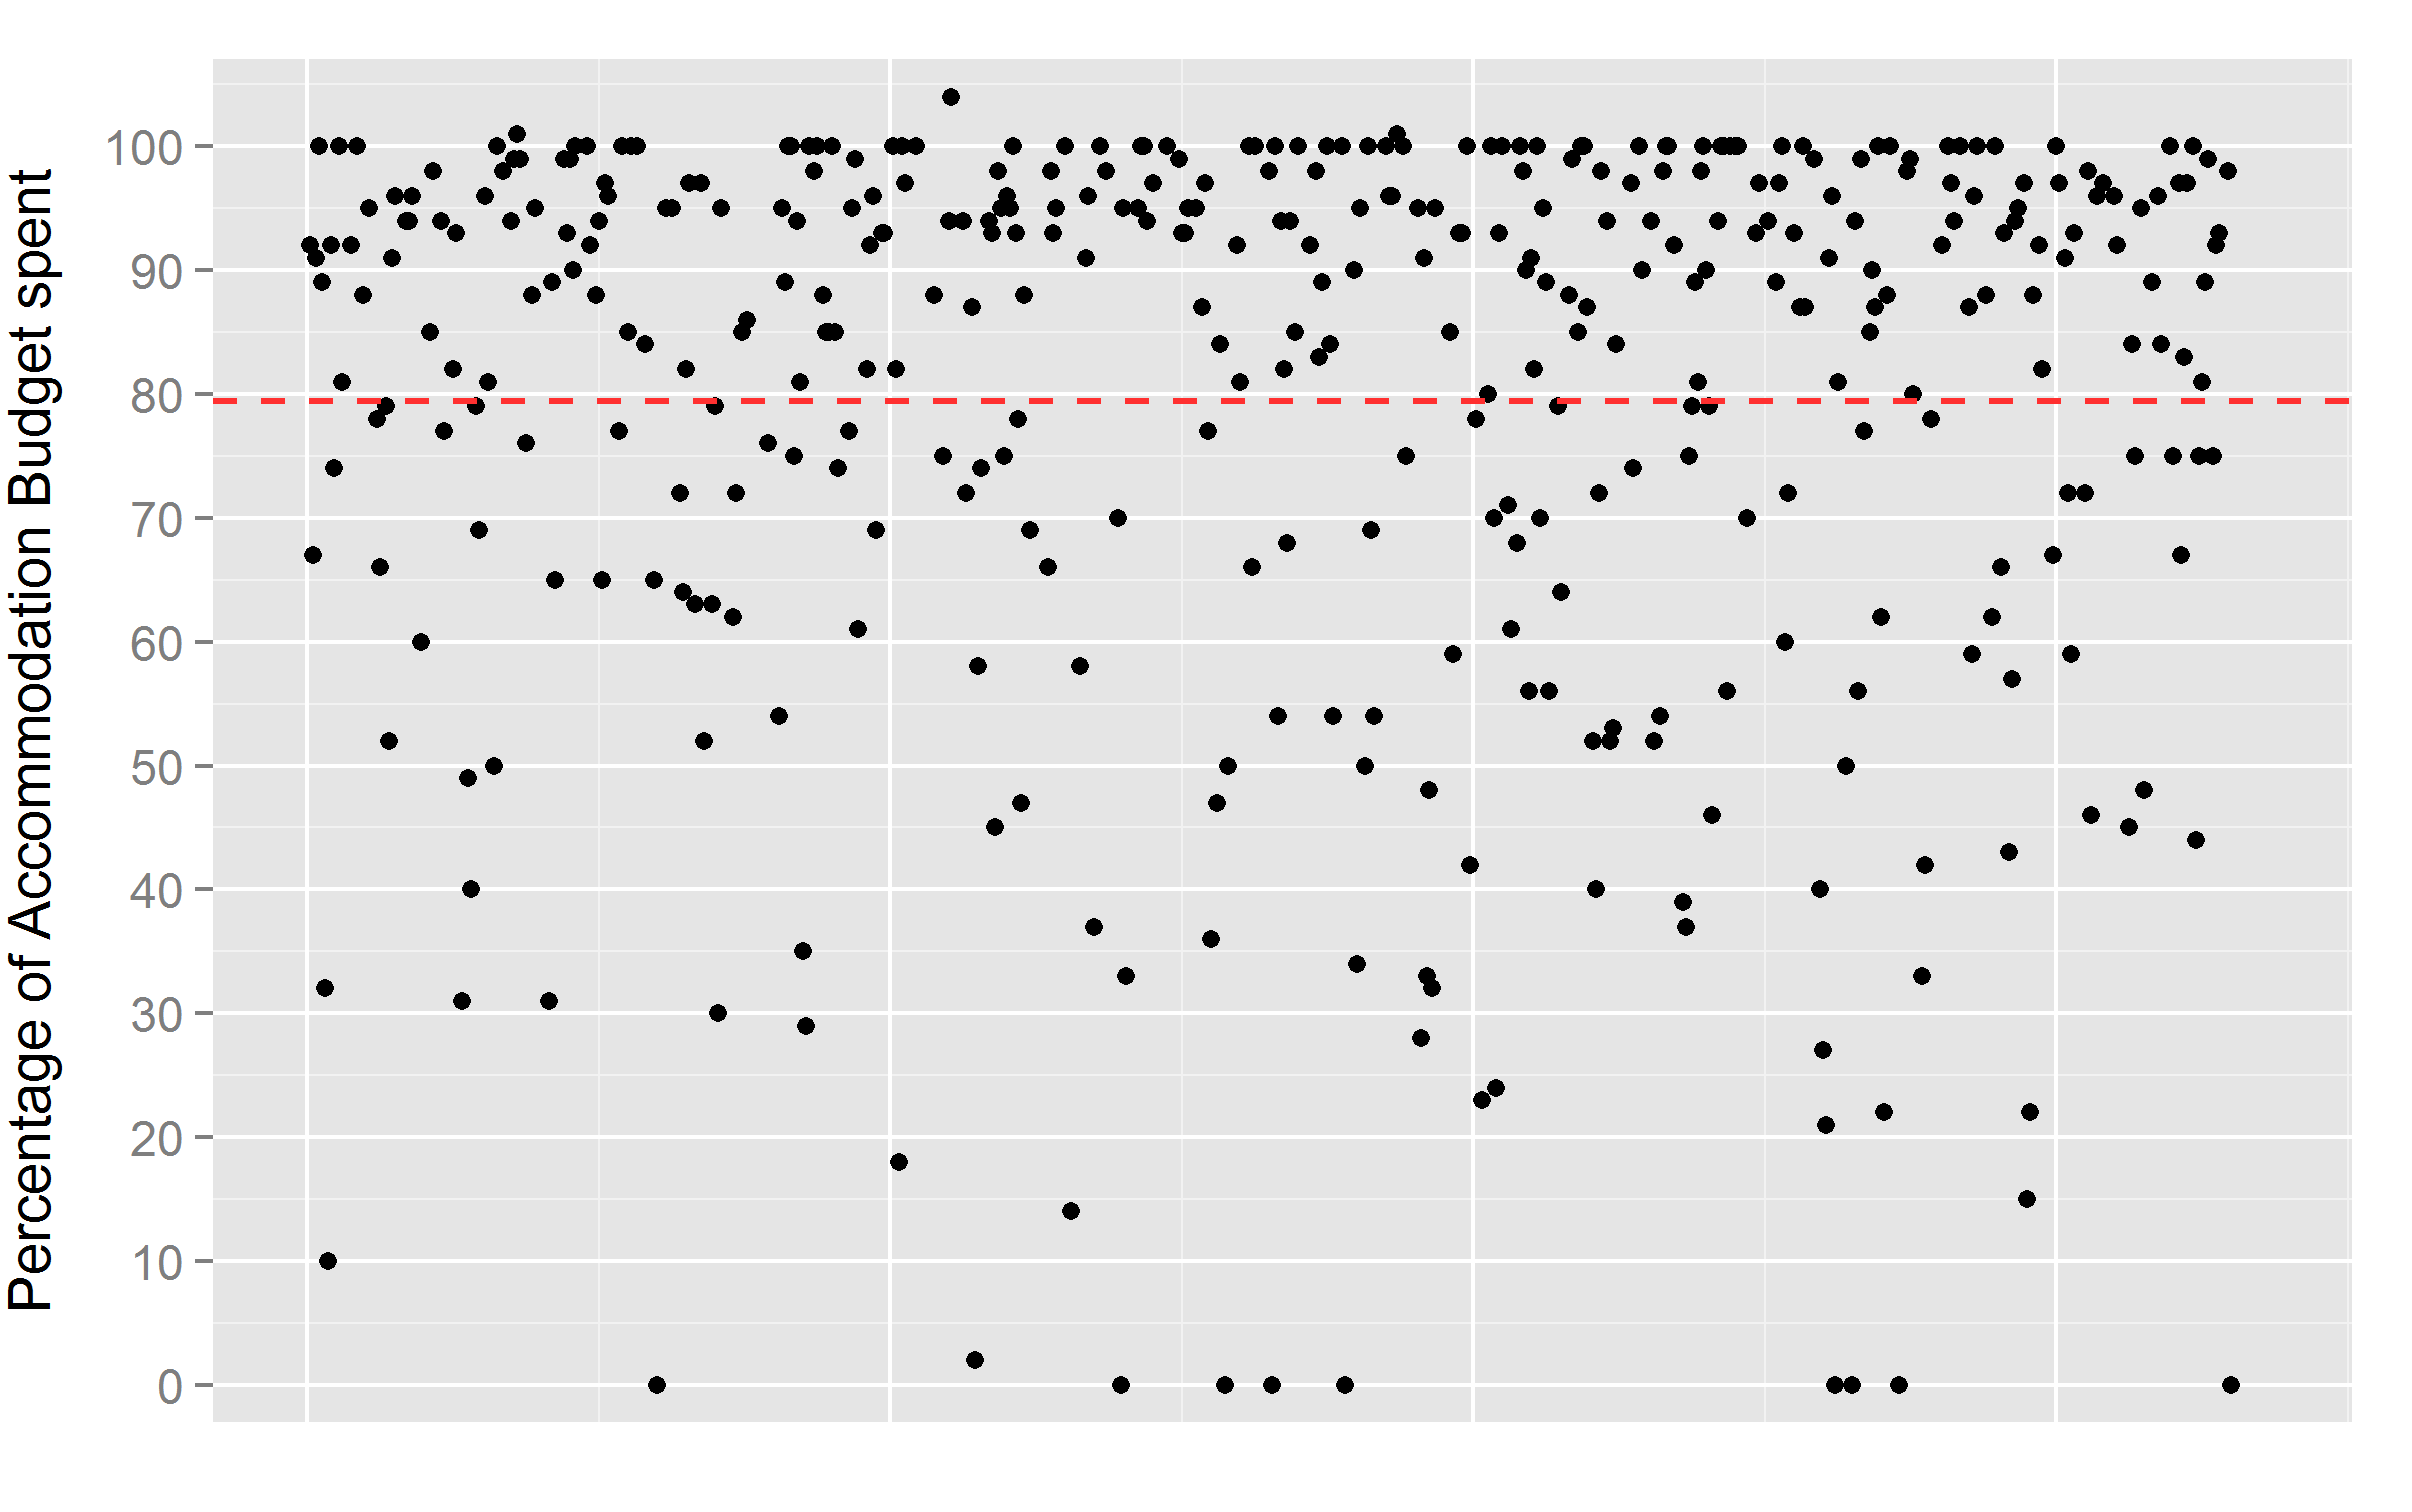 Graph 3: Percentage MPs spent as measured by their overall accommodation budget. Each dot represents individual MP. Dotted line represents average.